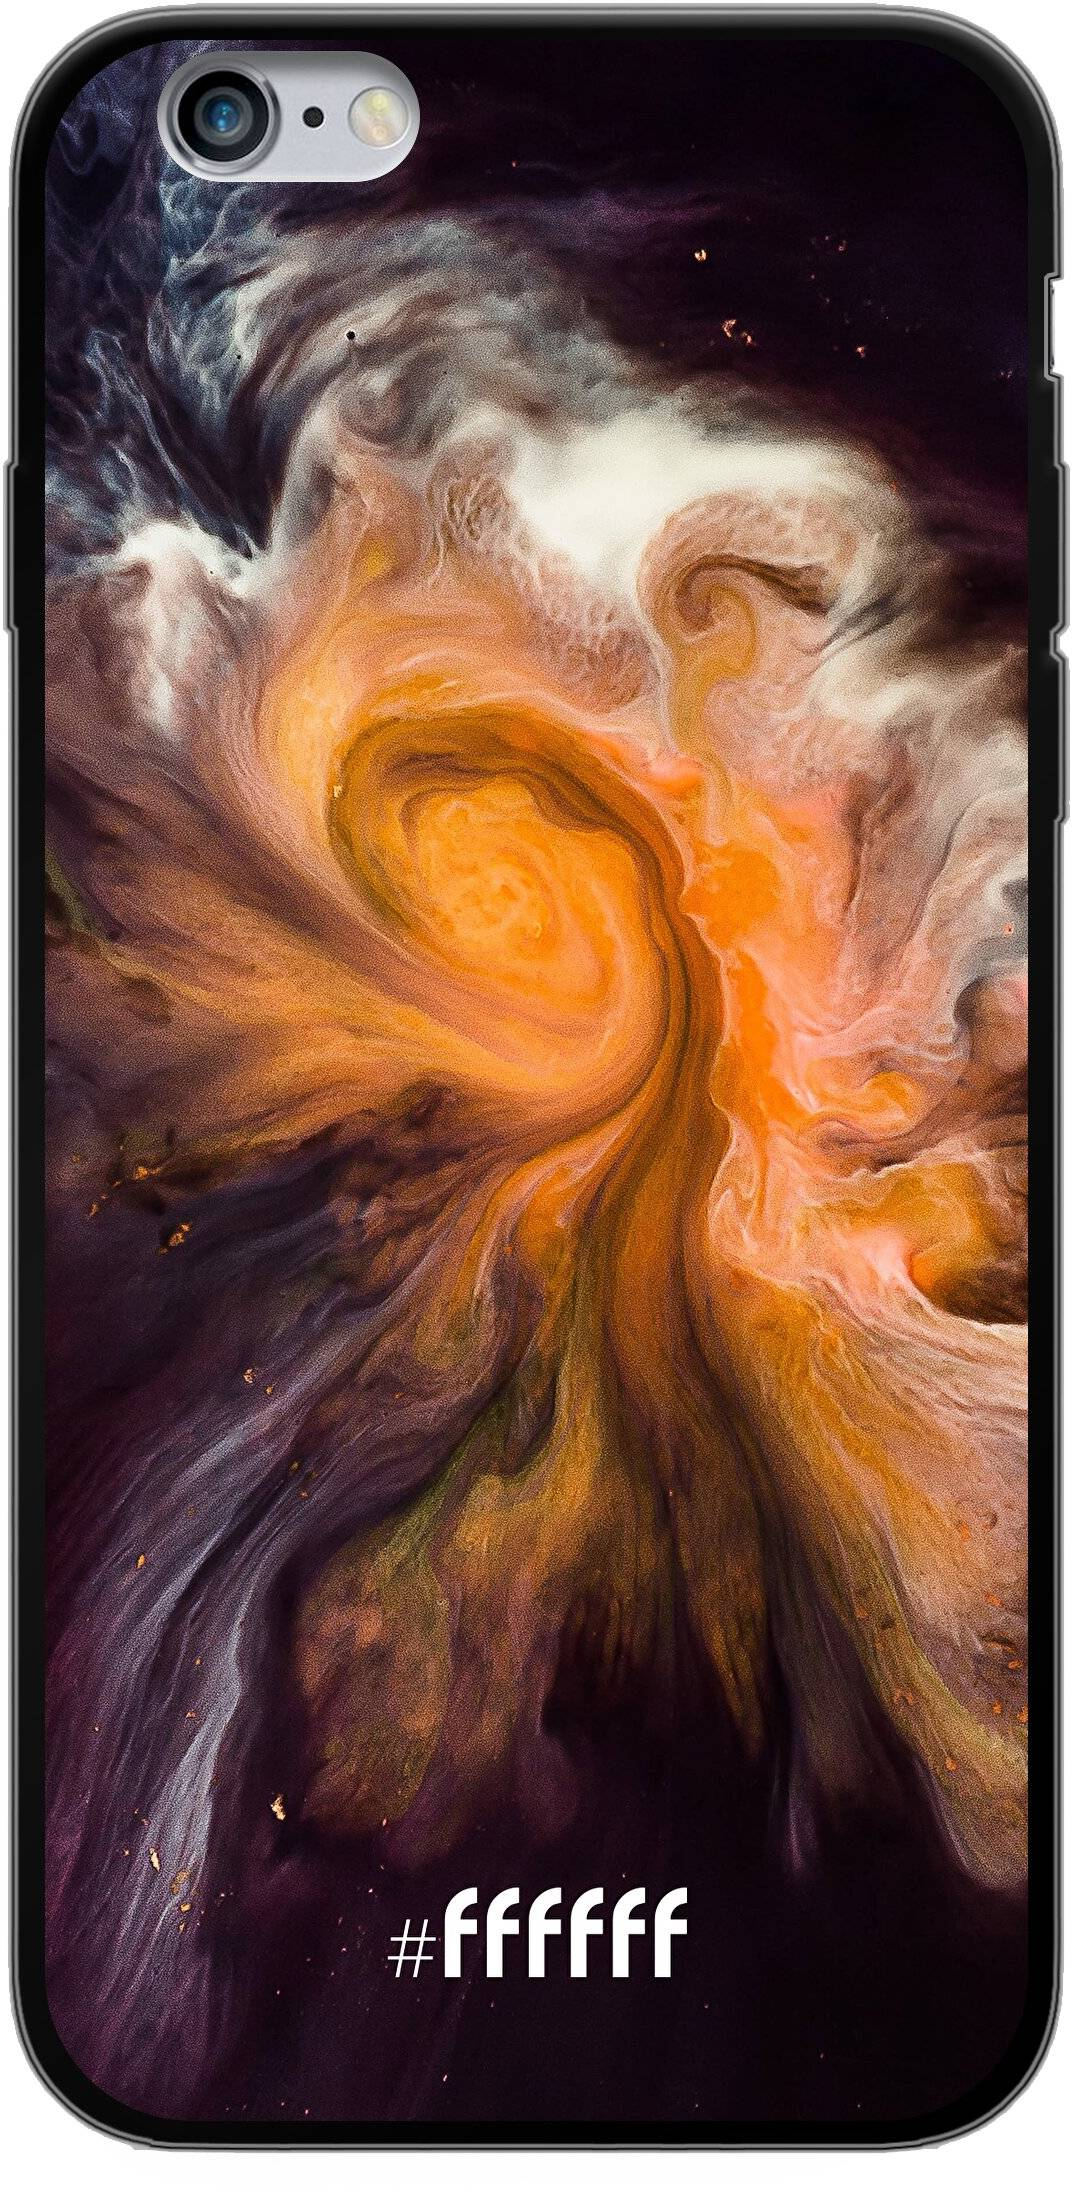 Crazy Space iPhone 6s